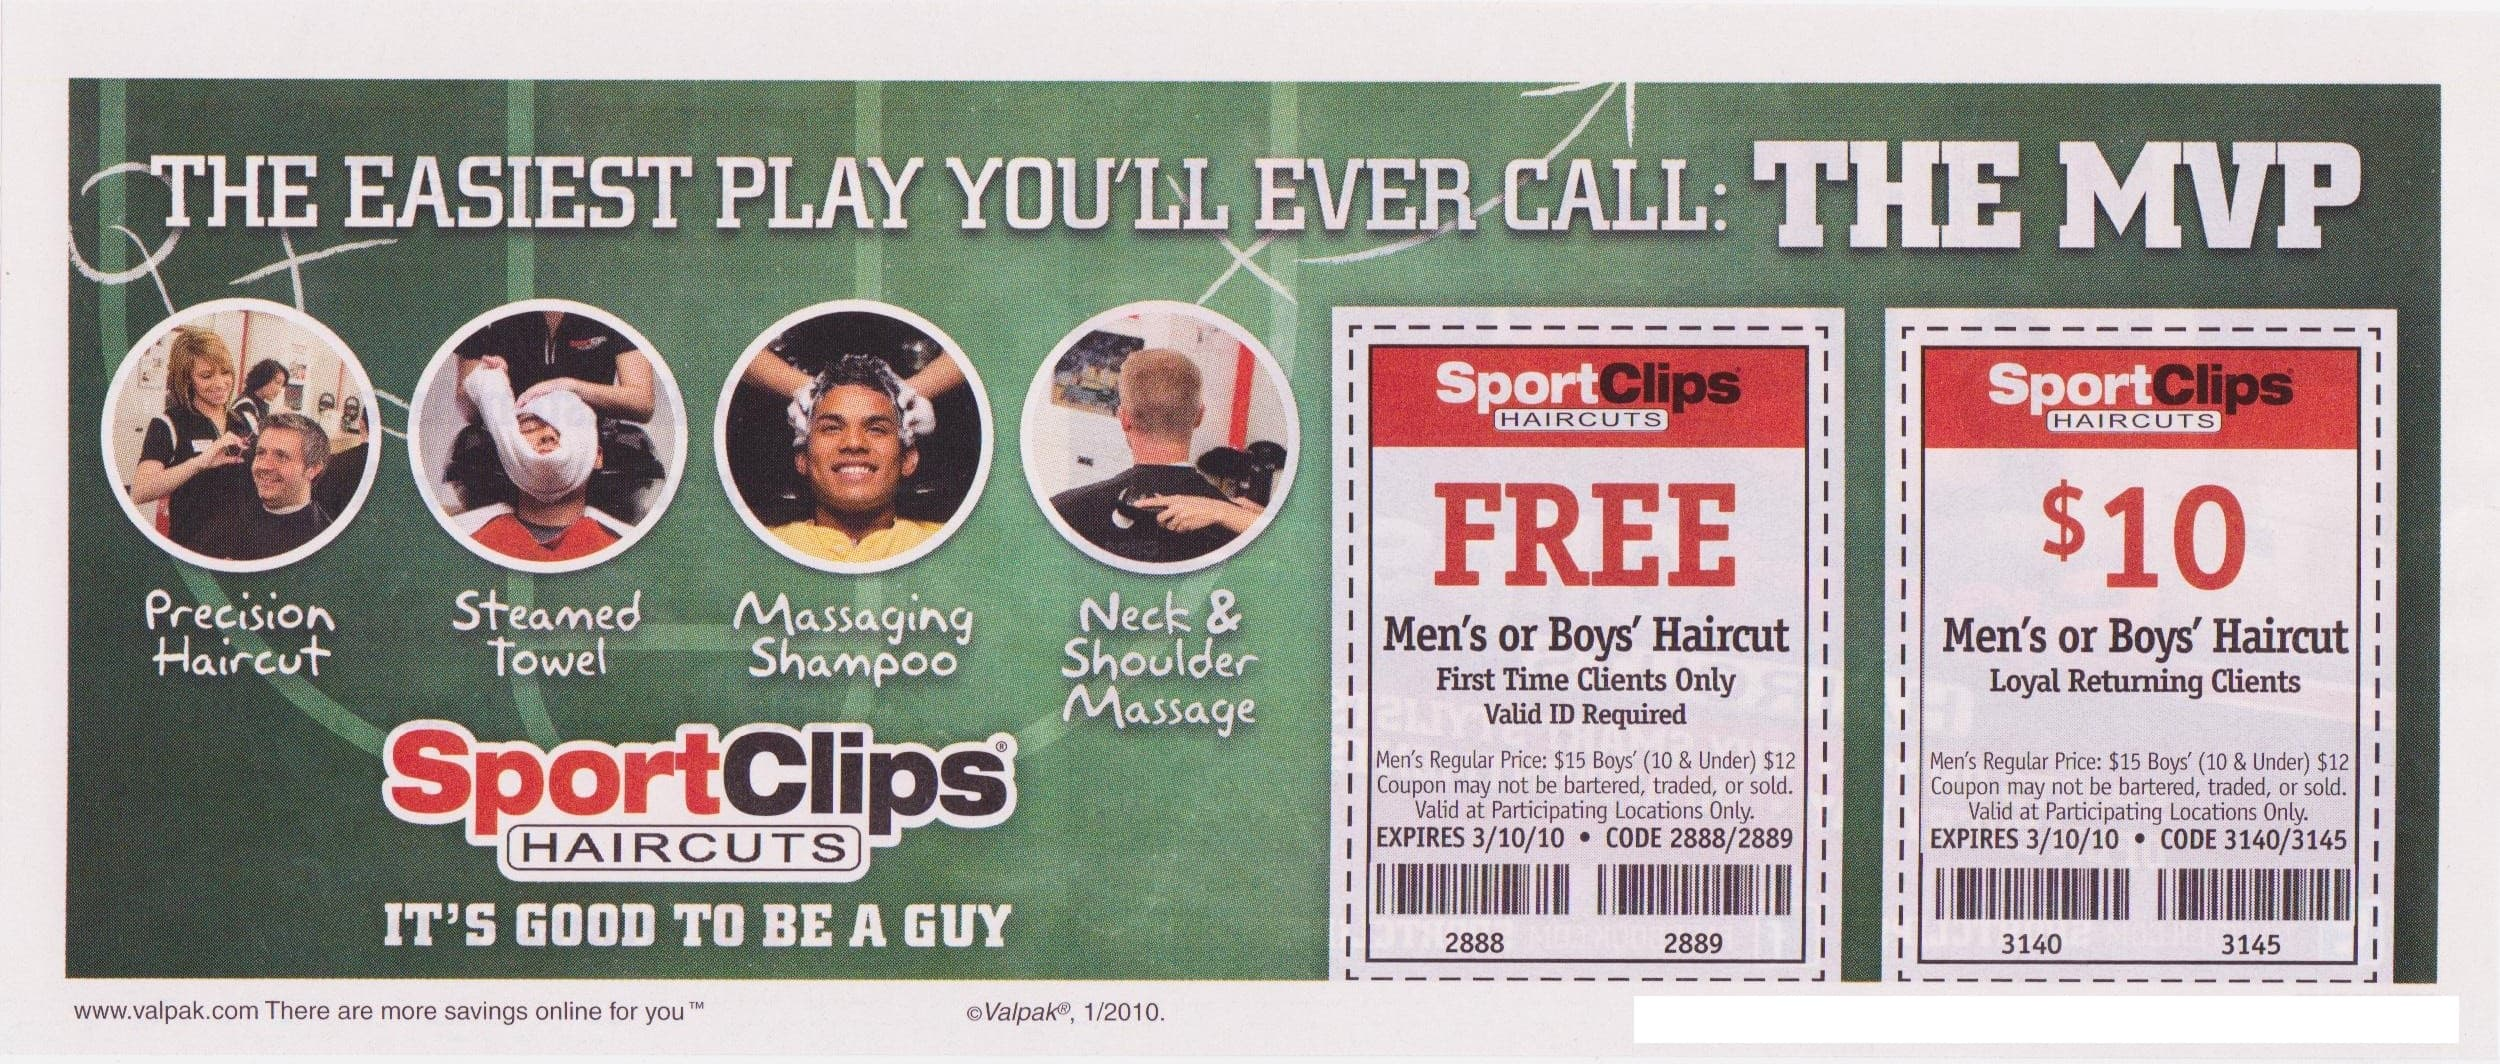 Sport Clips Men's Haircut (Free Haircut for 1st time visitors) - YMMV - Slickdeals.net